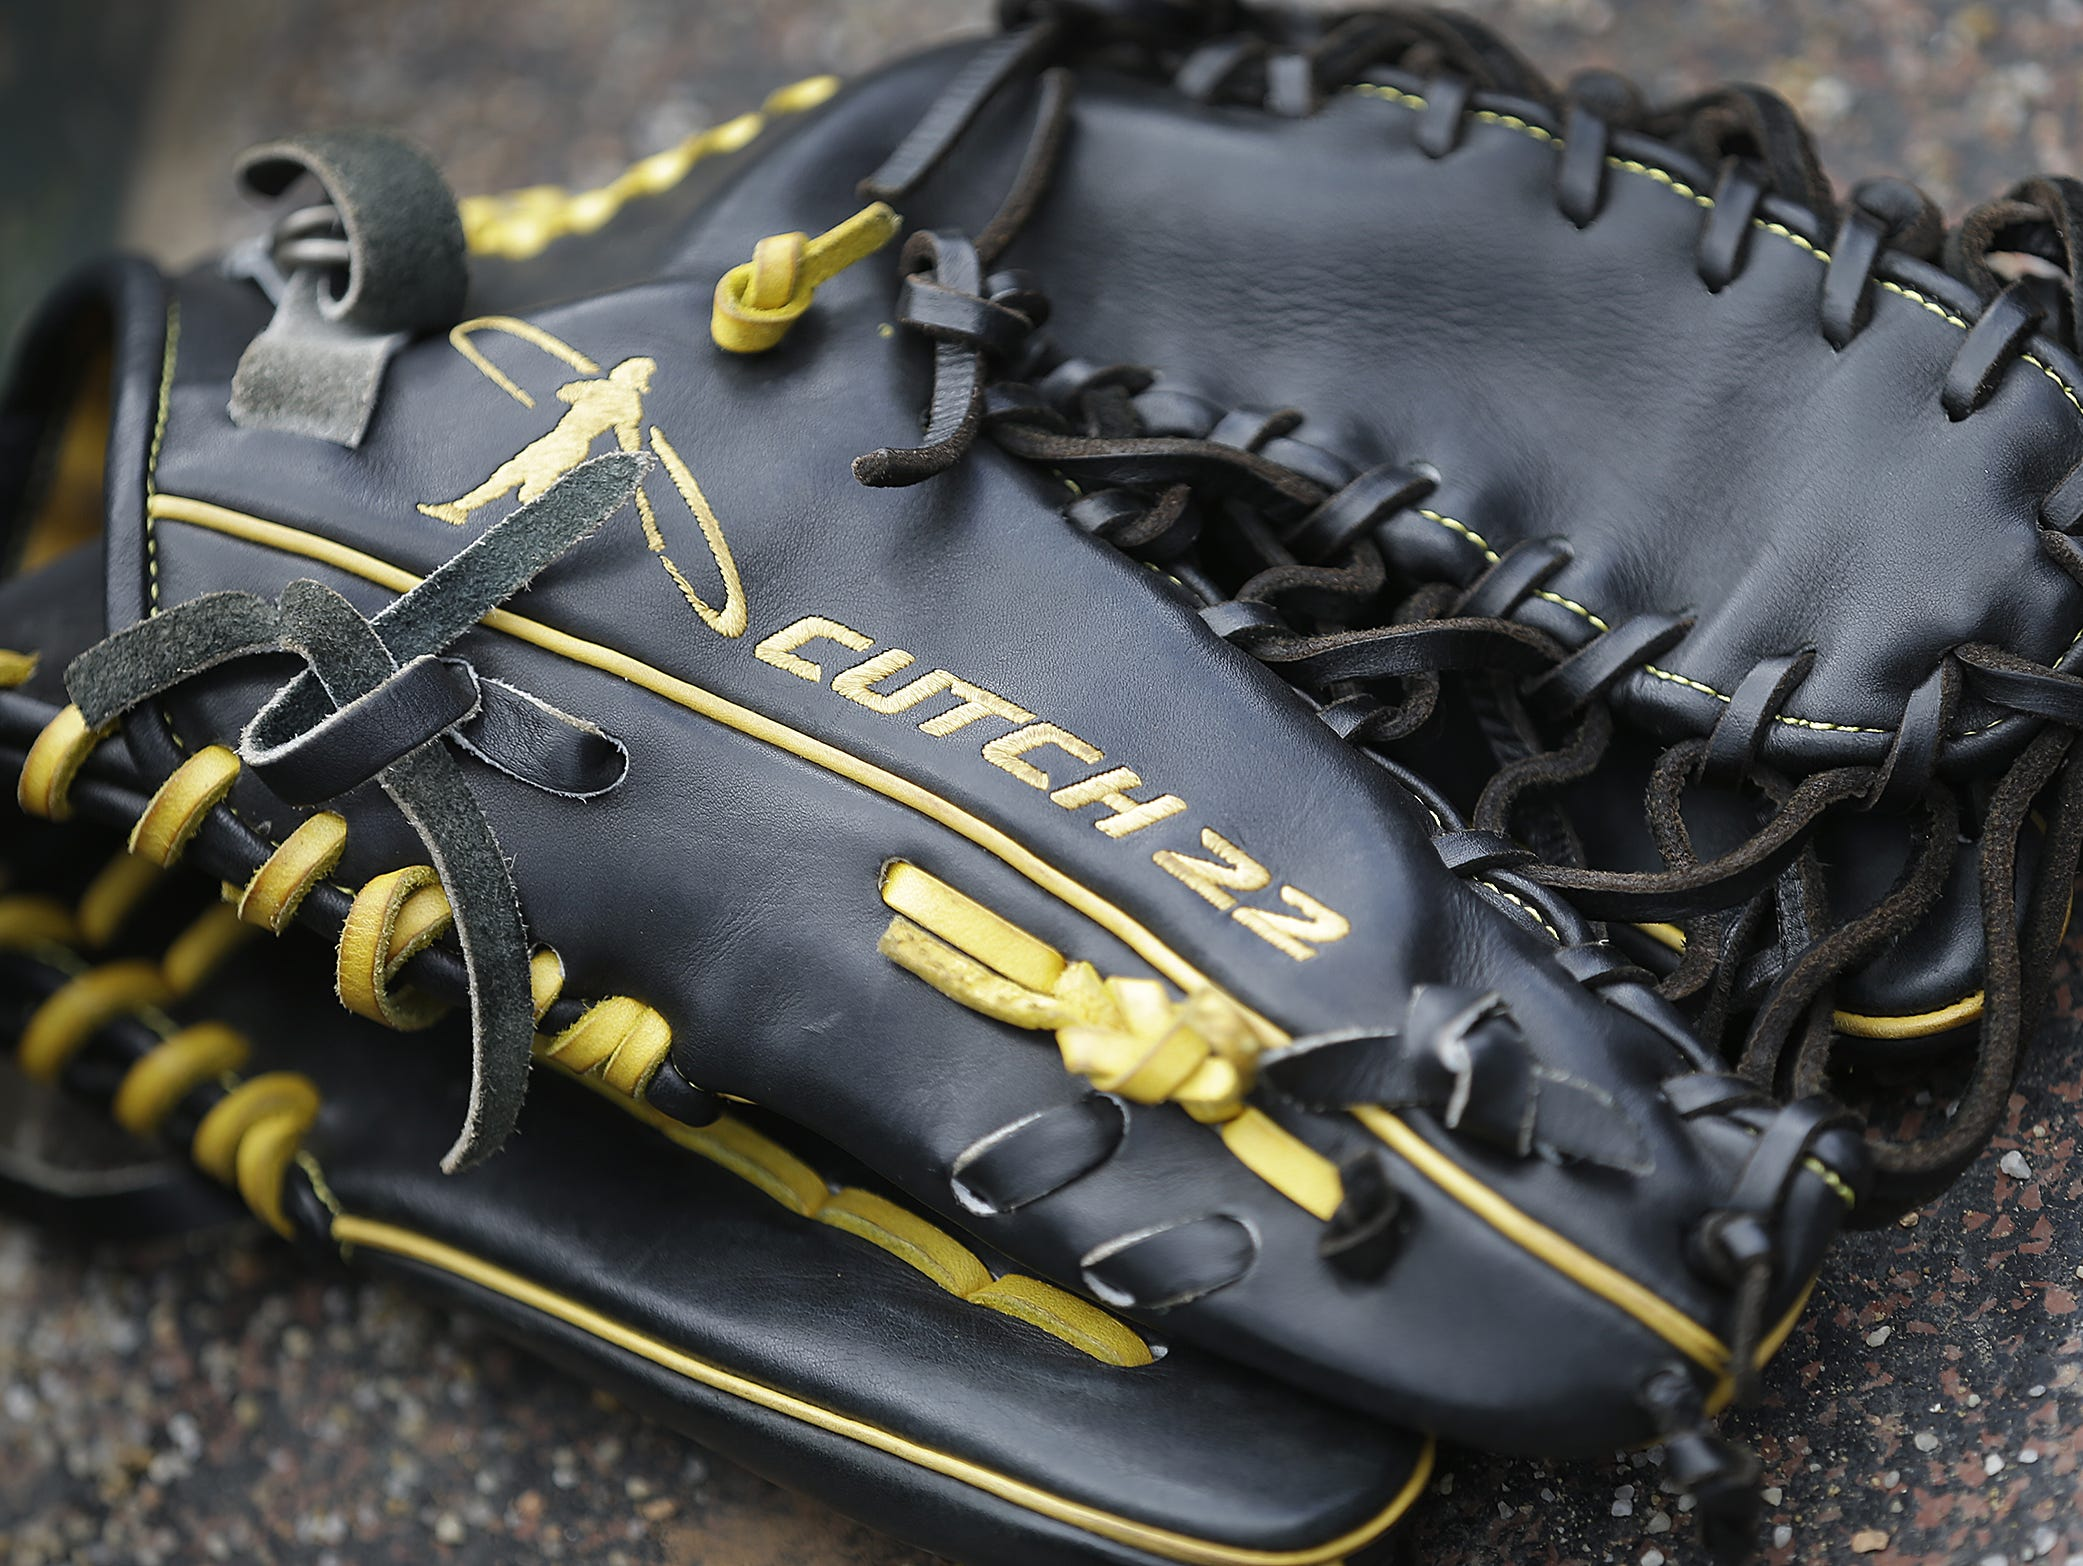 The personalized glove of Pittsburgh Pirates center fielder Andrew McCutchen. The Pittsburgh Pirates hosted the Cincinnati Reds in an exhibition baseball game Saturday, Apr 2, 2016, afternoon at Victory Field.